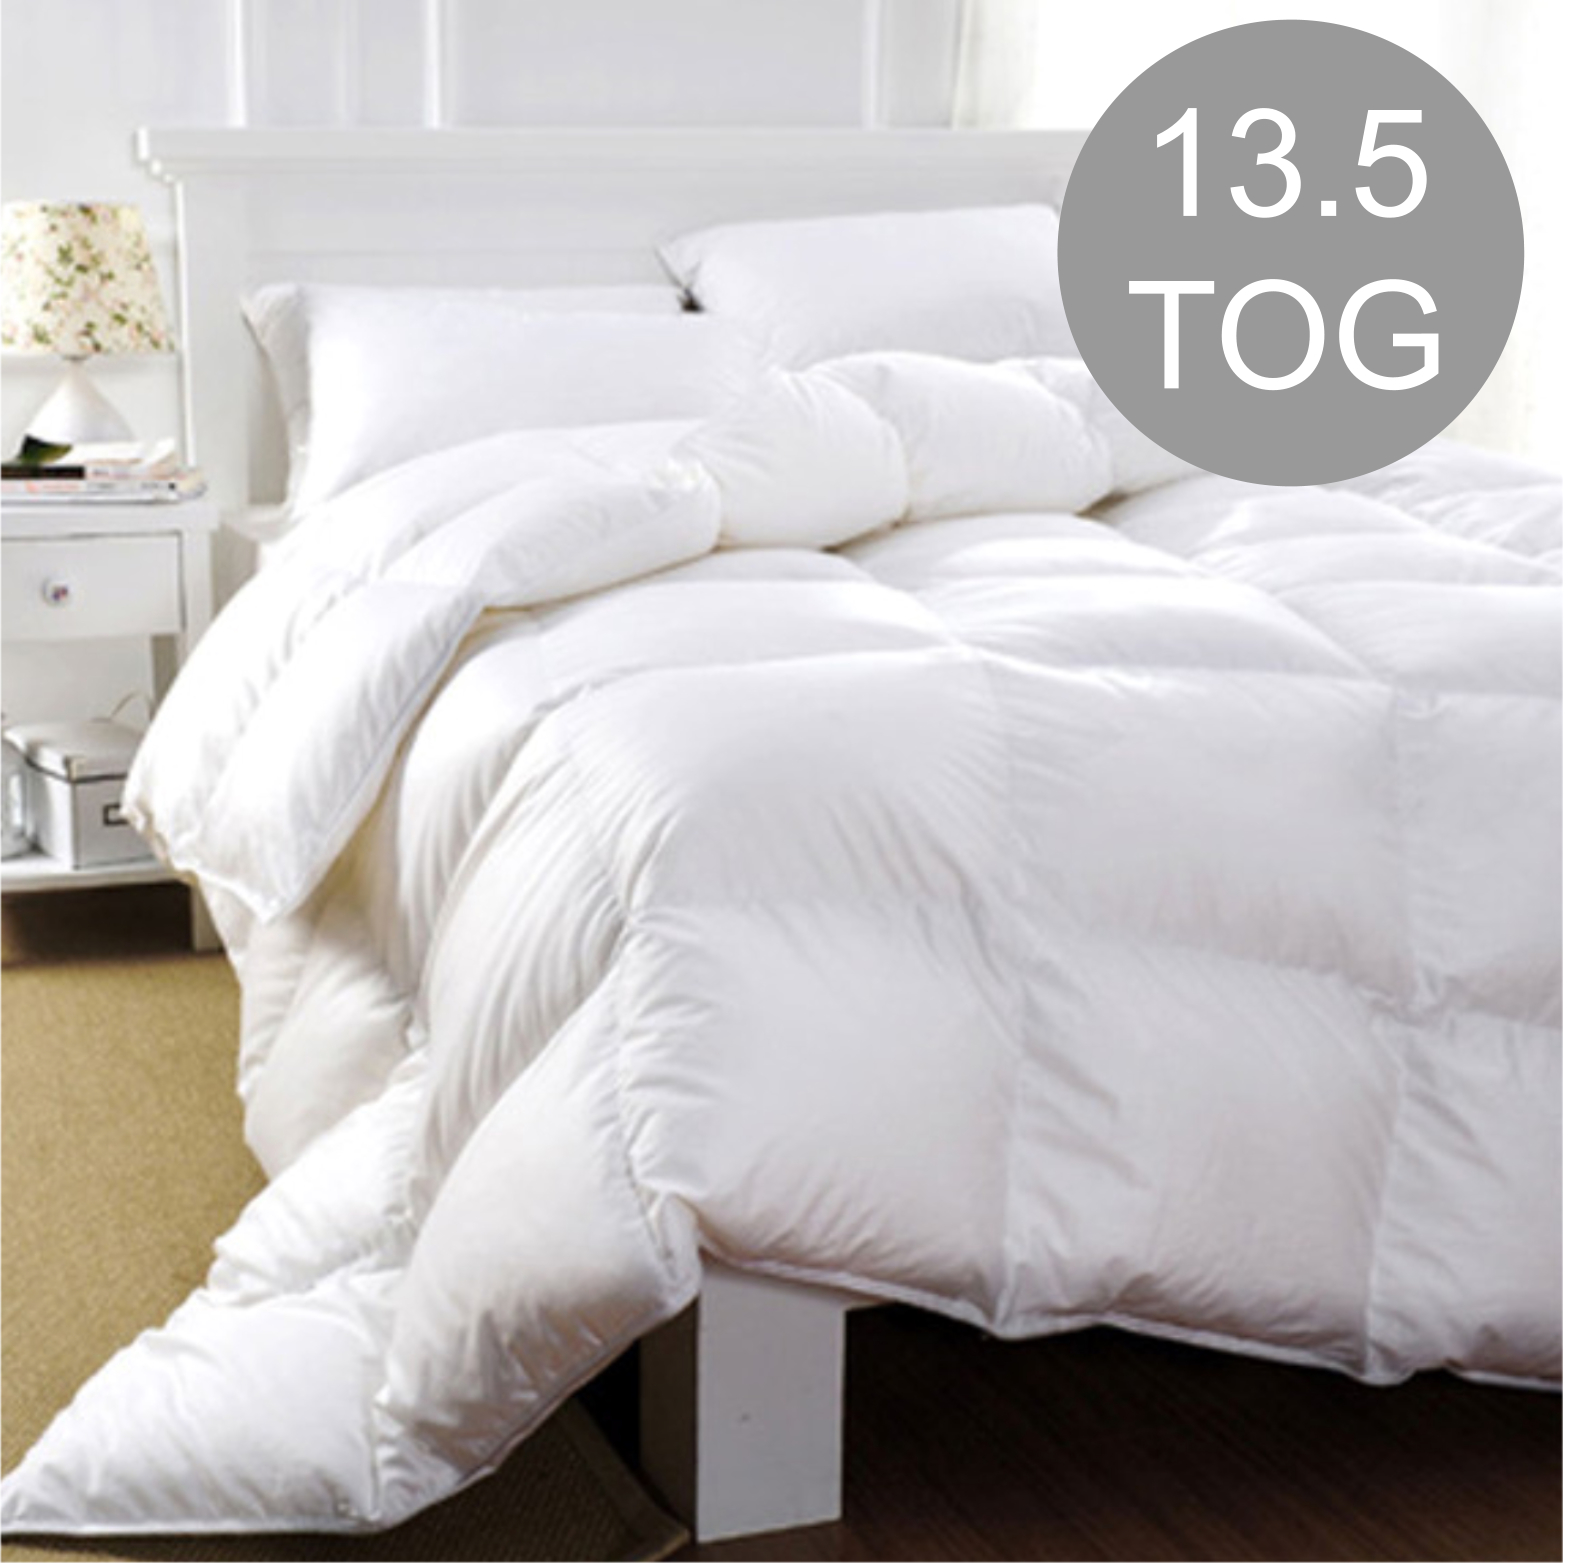 a9f371a171bc Luxury Hotel Quality 13.5 Tog Duck Feather & Down Duvet - EZY Sleep